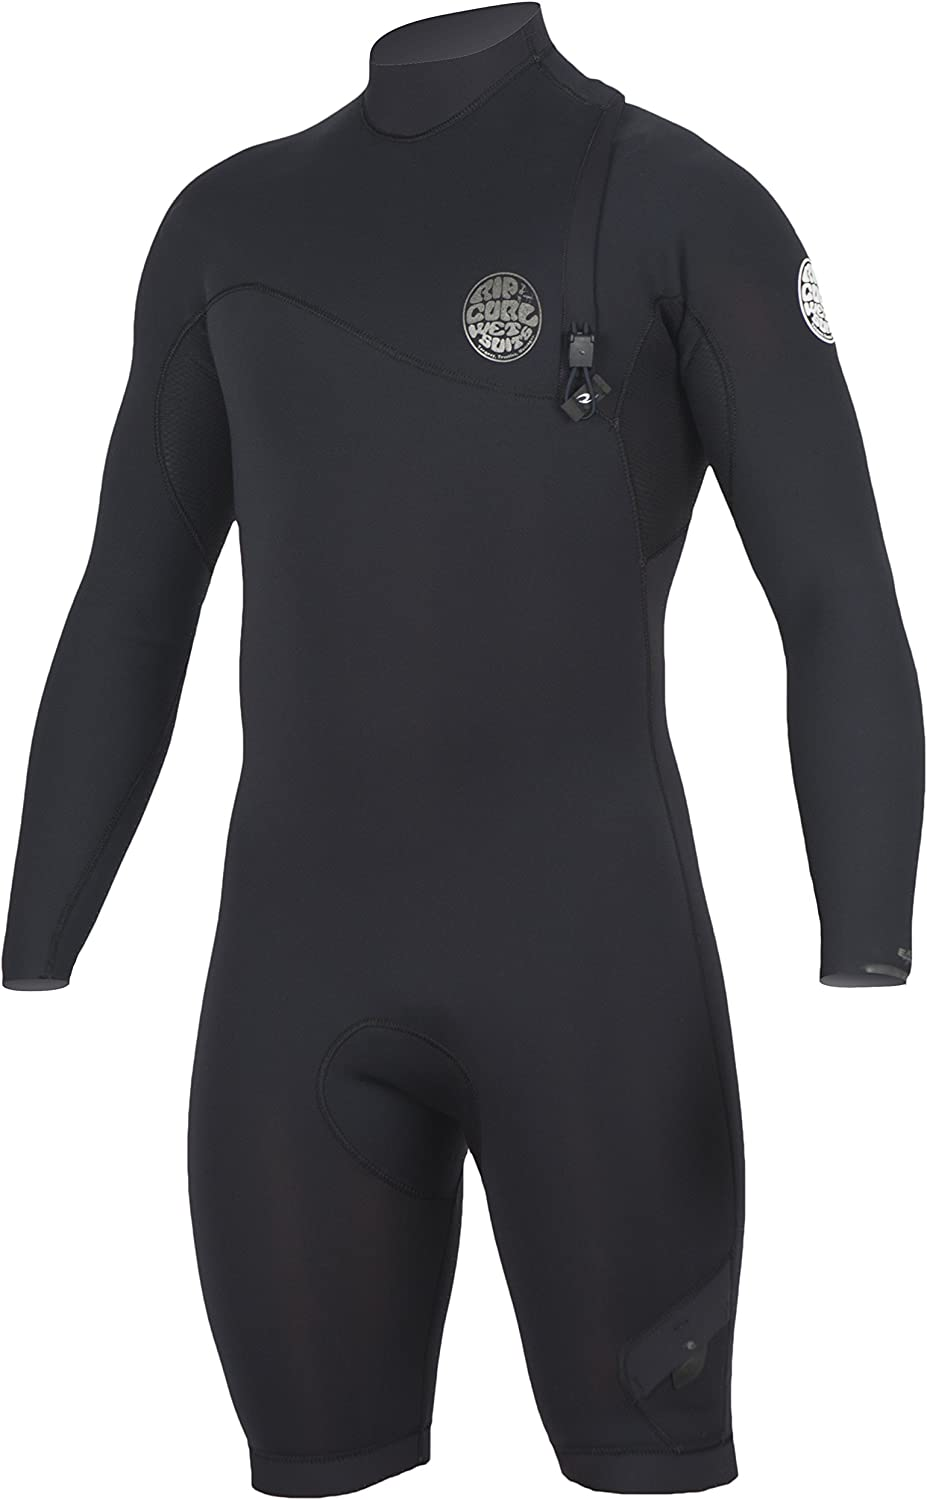 Rip Curl E Bomb Zip Free 2 Glued & Long Sleeve Spring Suit